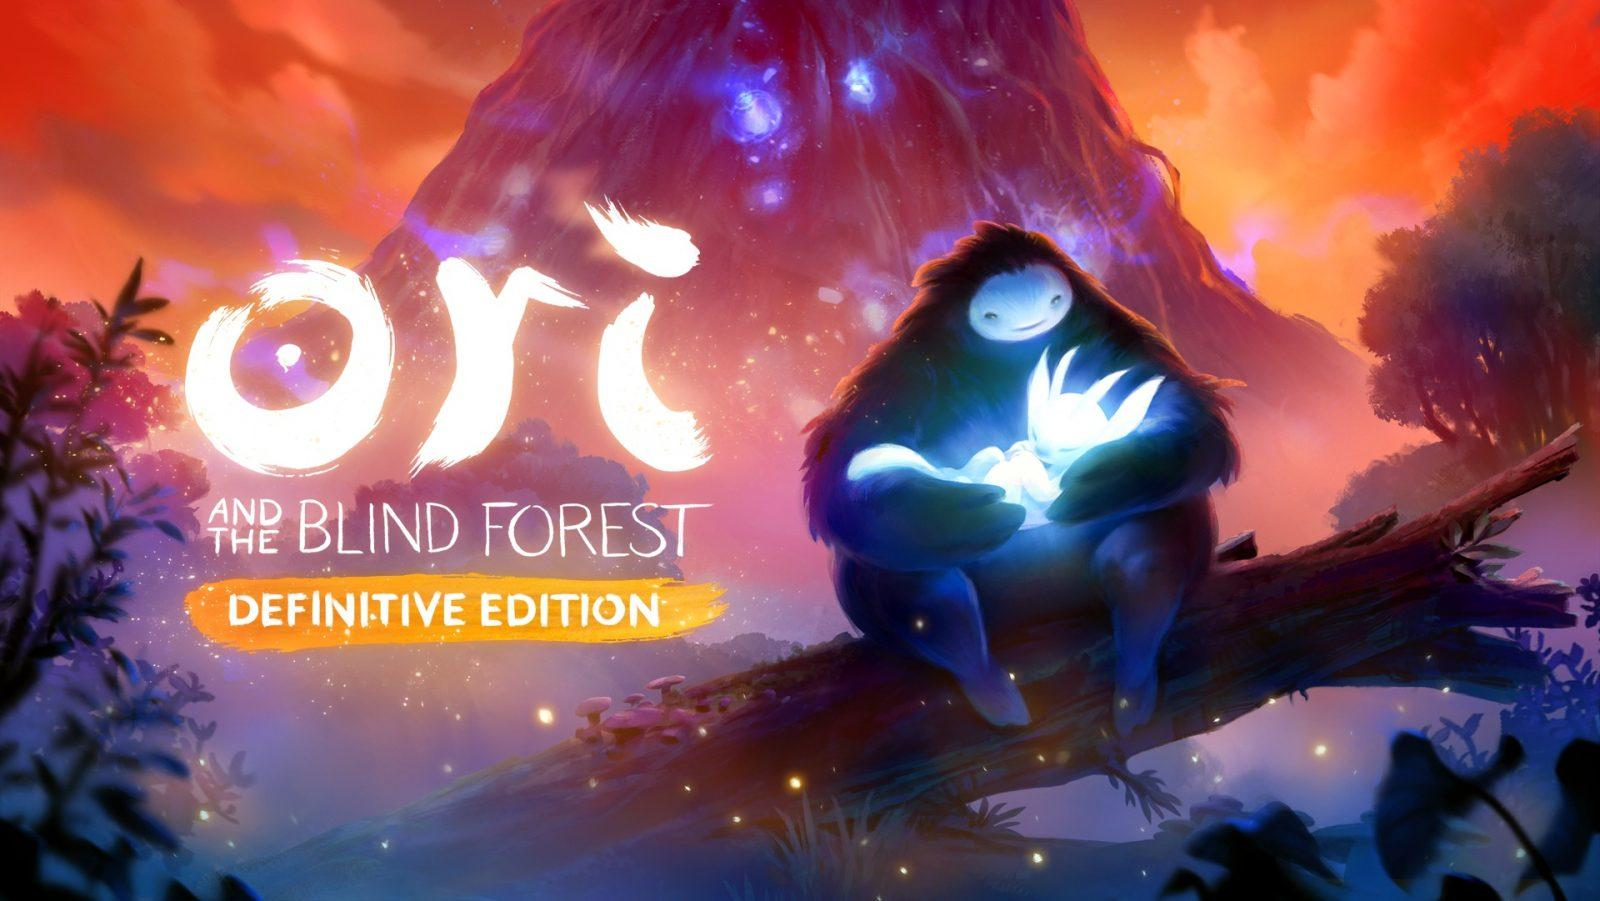 You Can Play Ori And The Blind Forest Demo For Switch Before Its Release